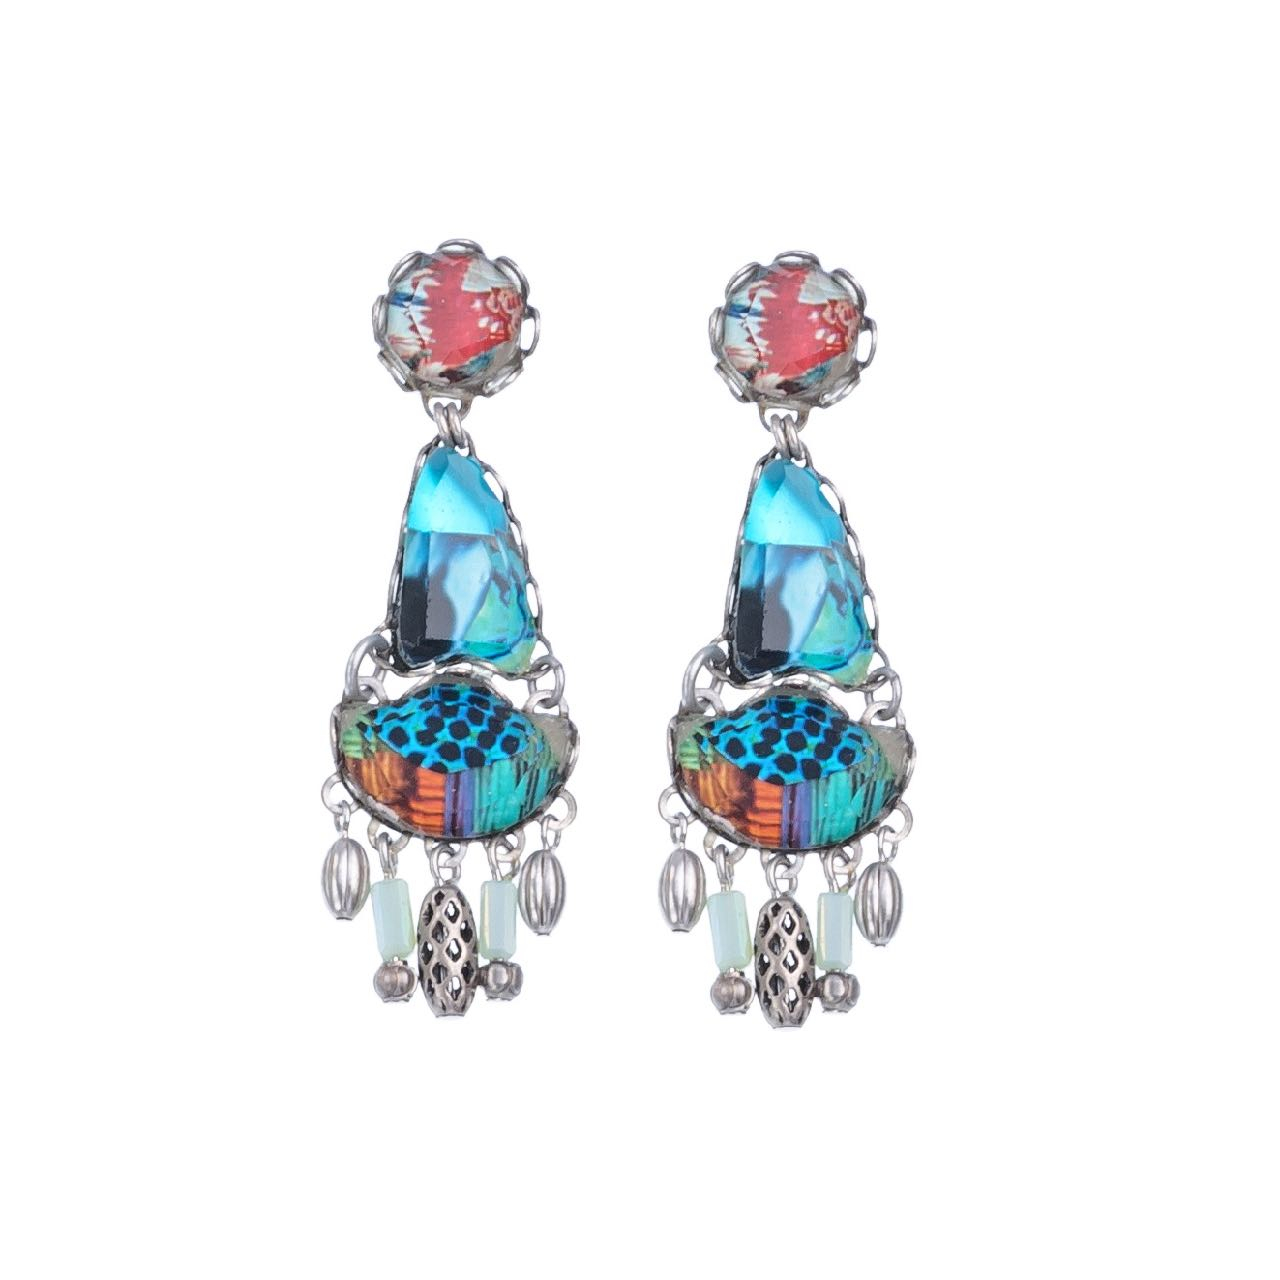 0793 Ayala Bar Earrings Revelation Buy Online